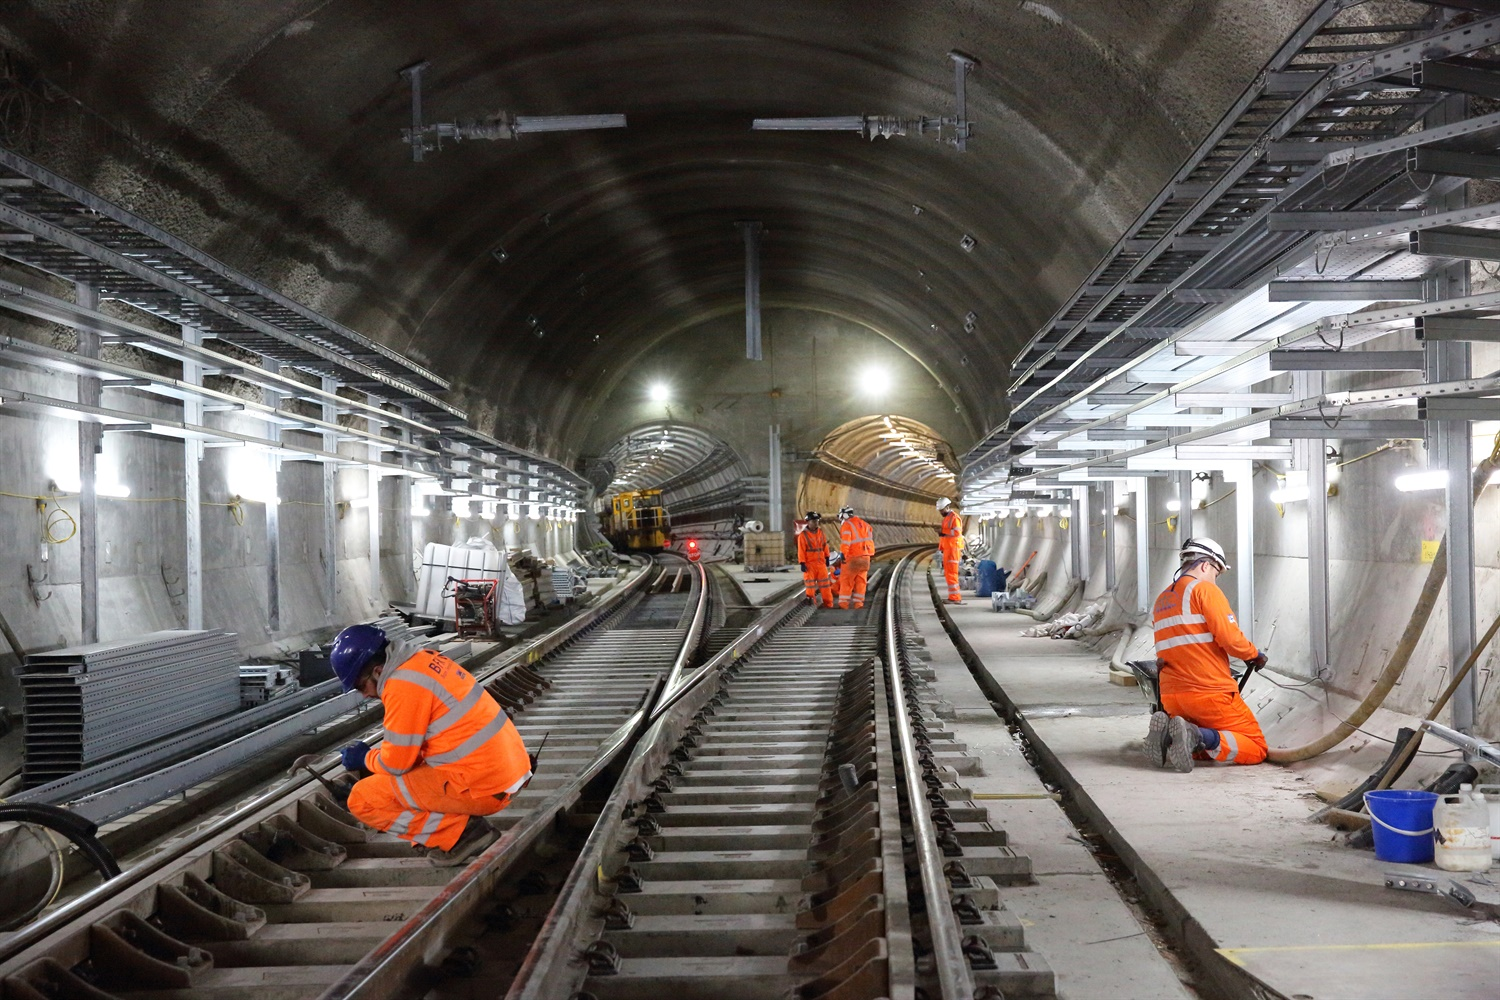 London Assembly finds 'grave discrepancies' and was 'misled' over Crossrail delay